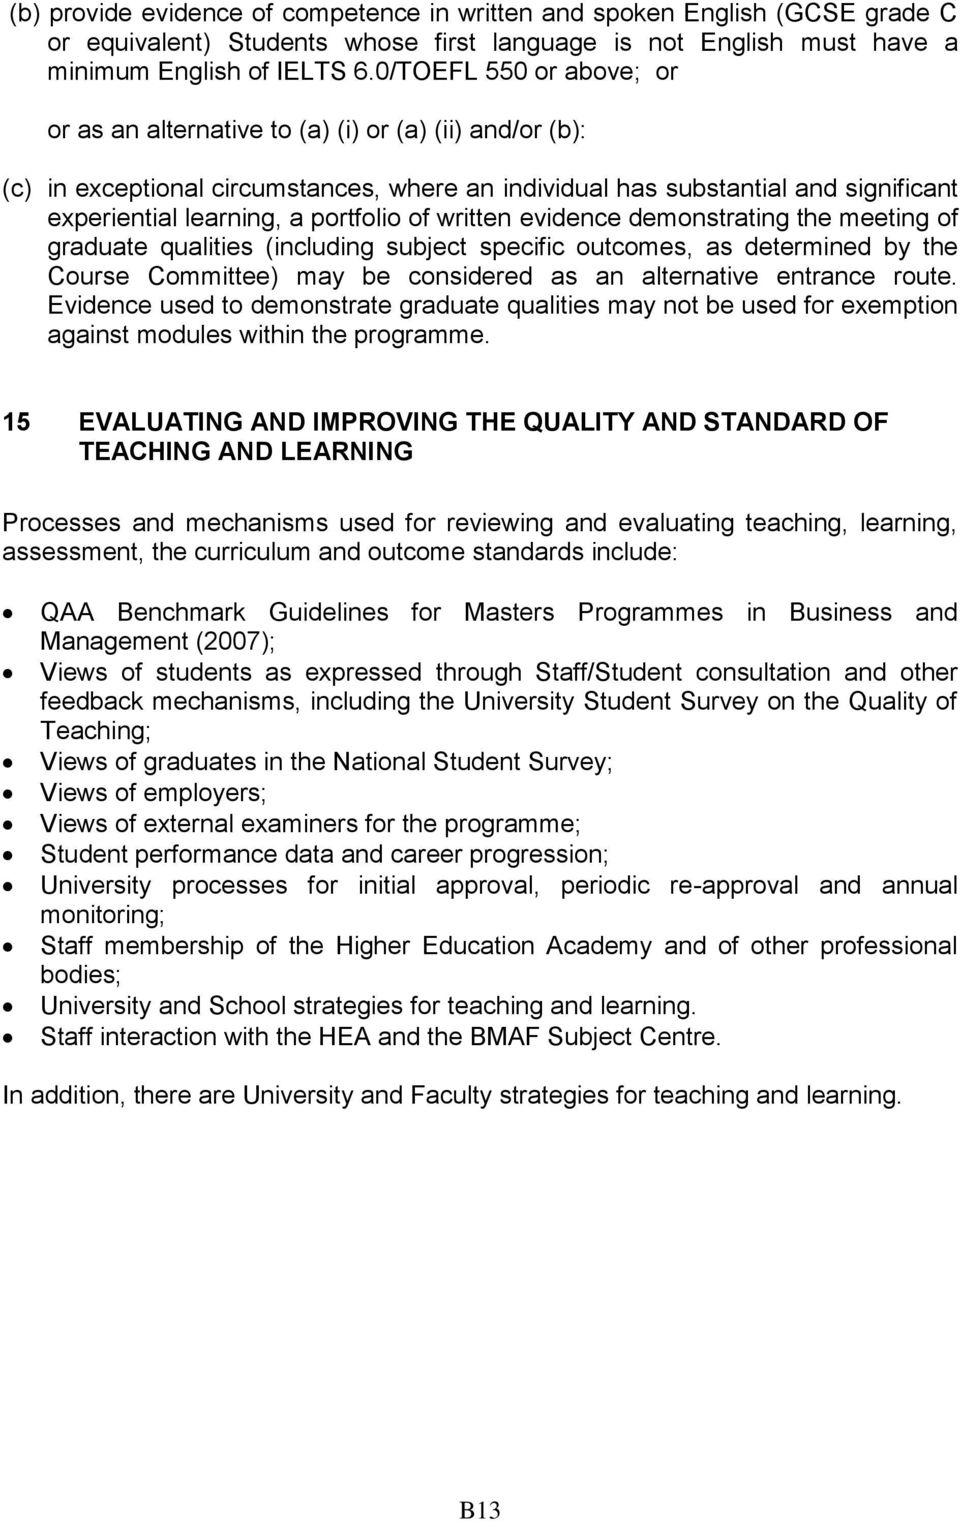 portfolio of written evidence demonstrating the meeting of graduate qualities (including subject specific outcomes, as determined by the Course Committee) may be considered as an alternative entrance